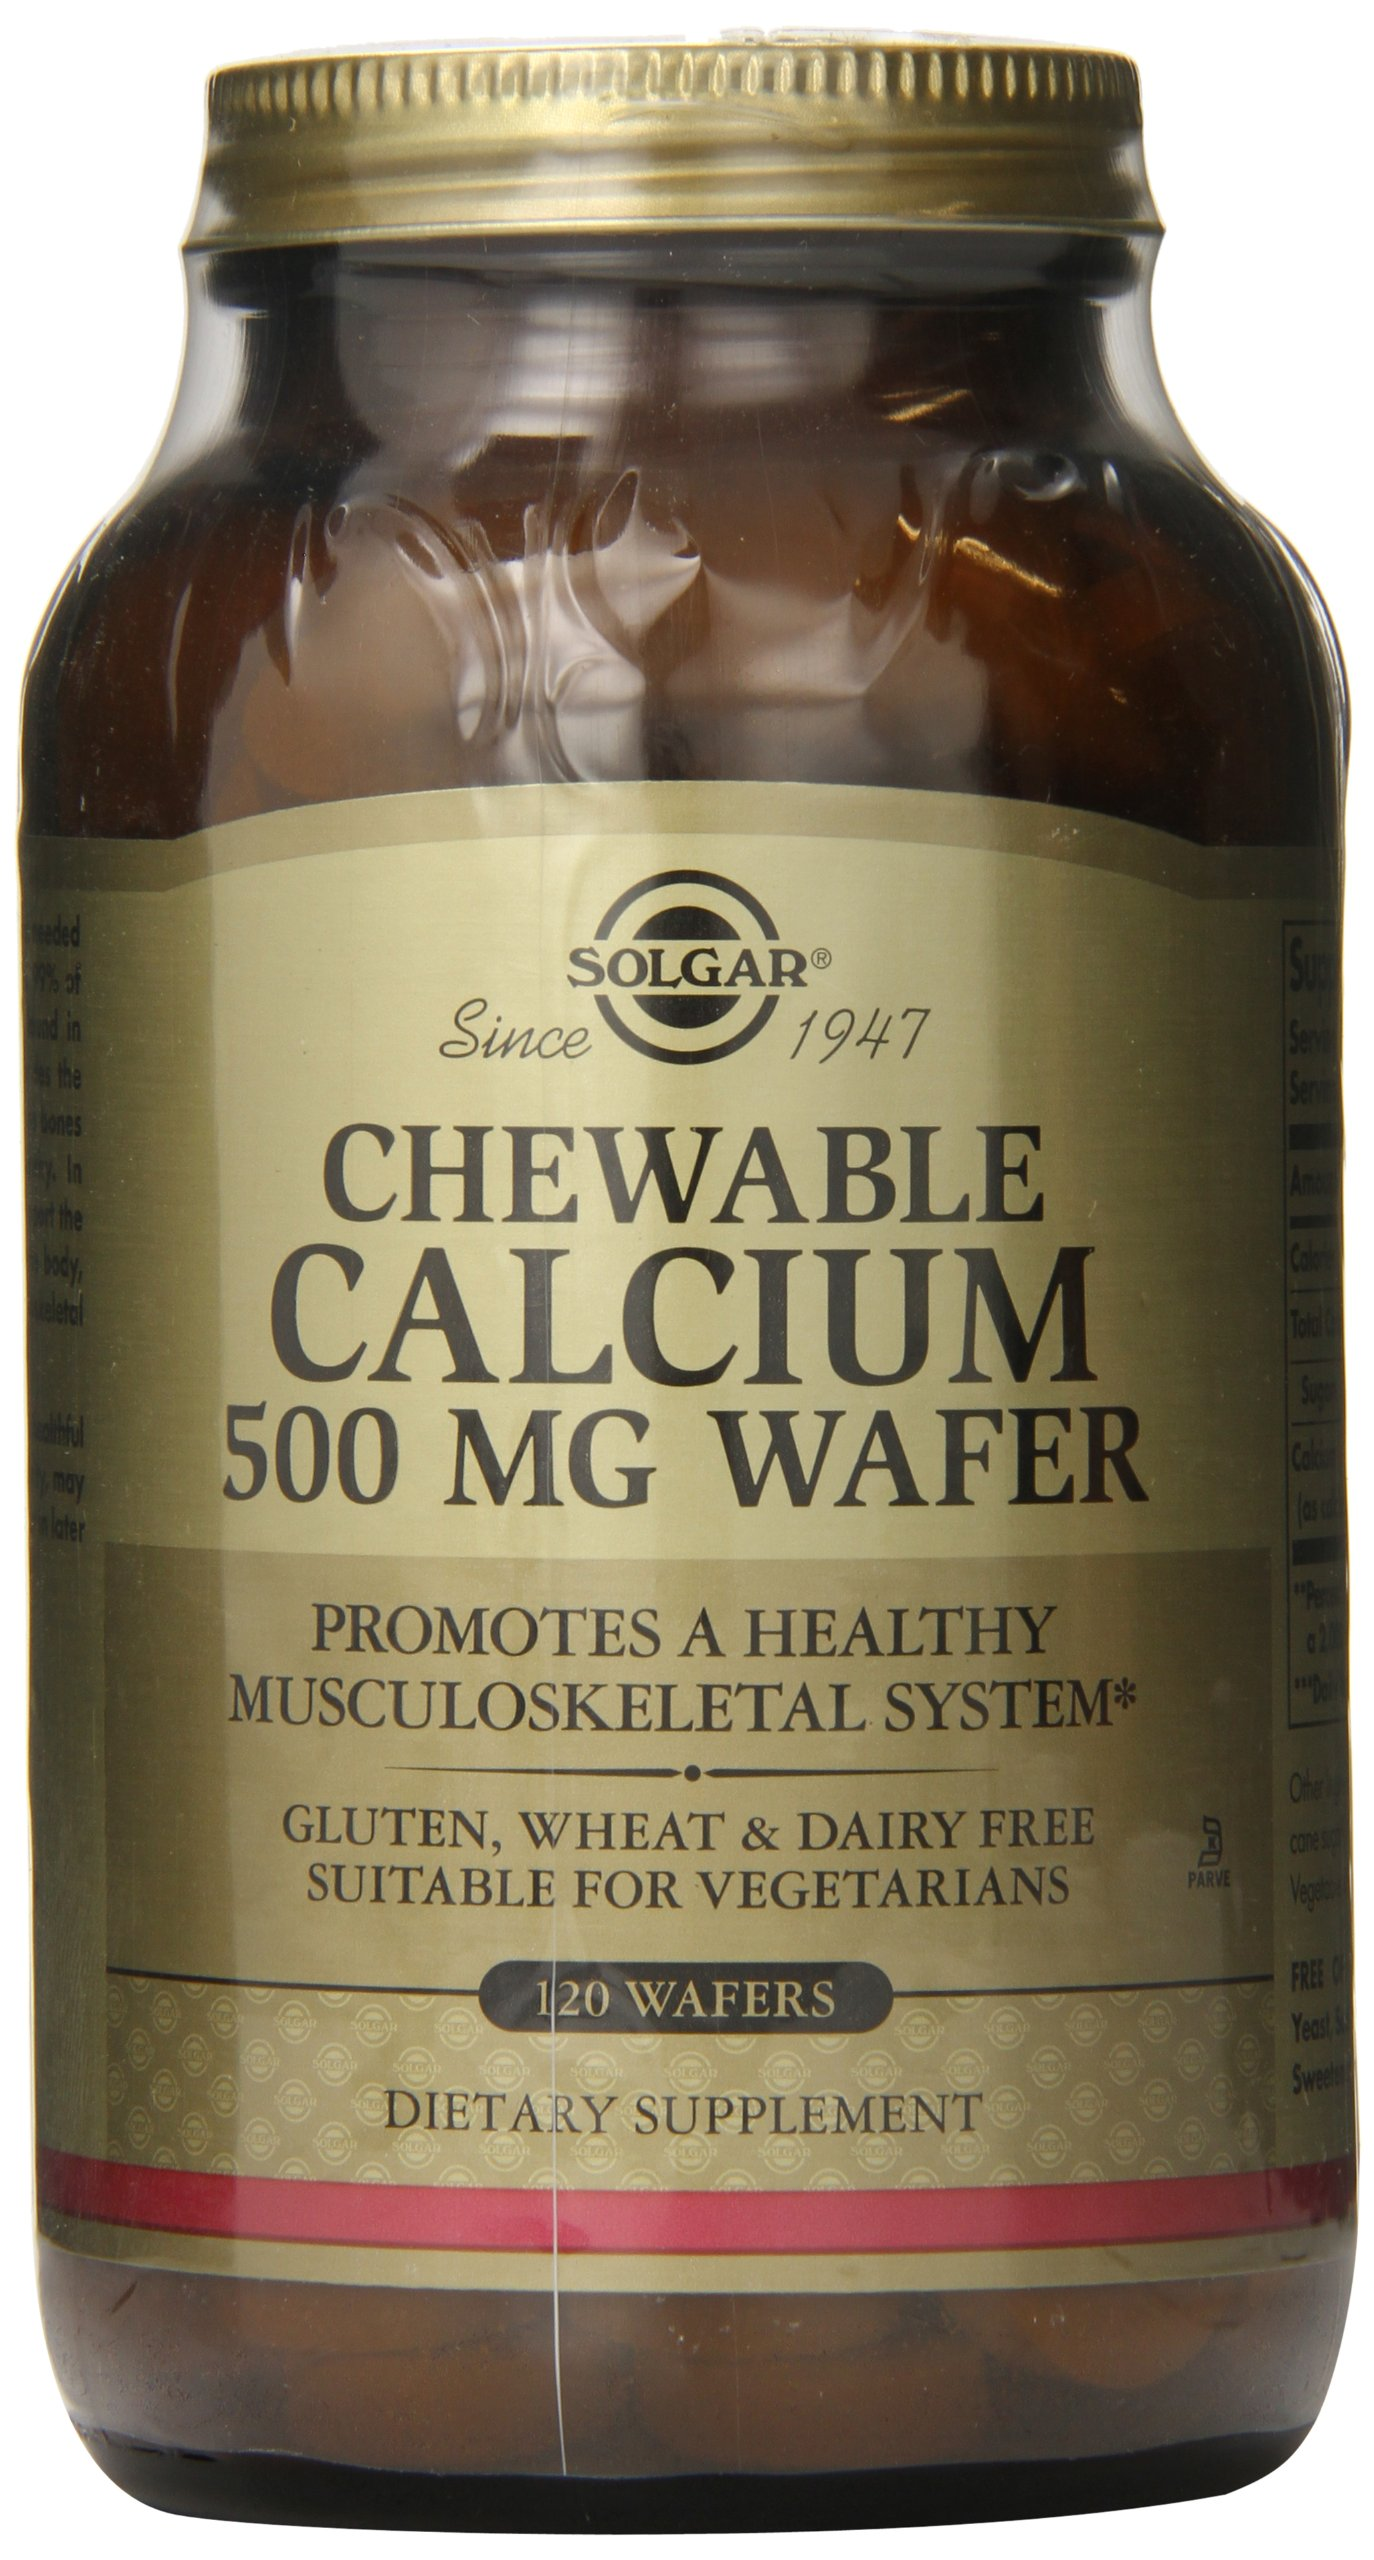 Solgar - Chewable Calcium Wafers, 500 Mg, 120 Wafers